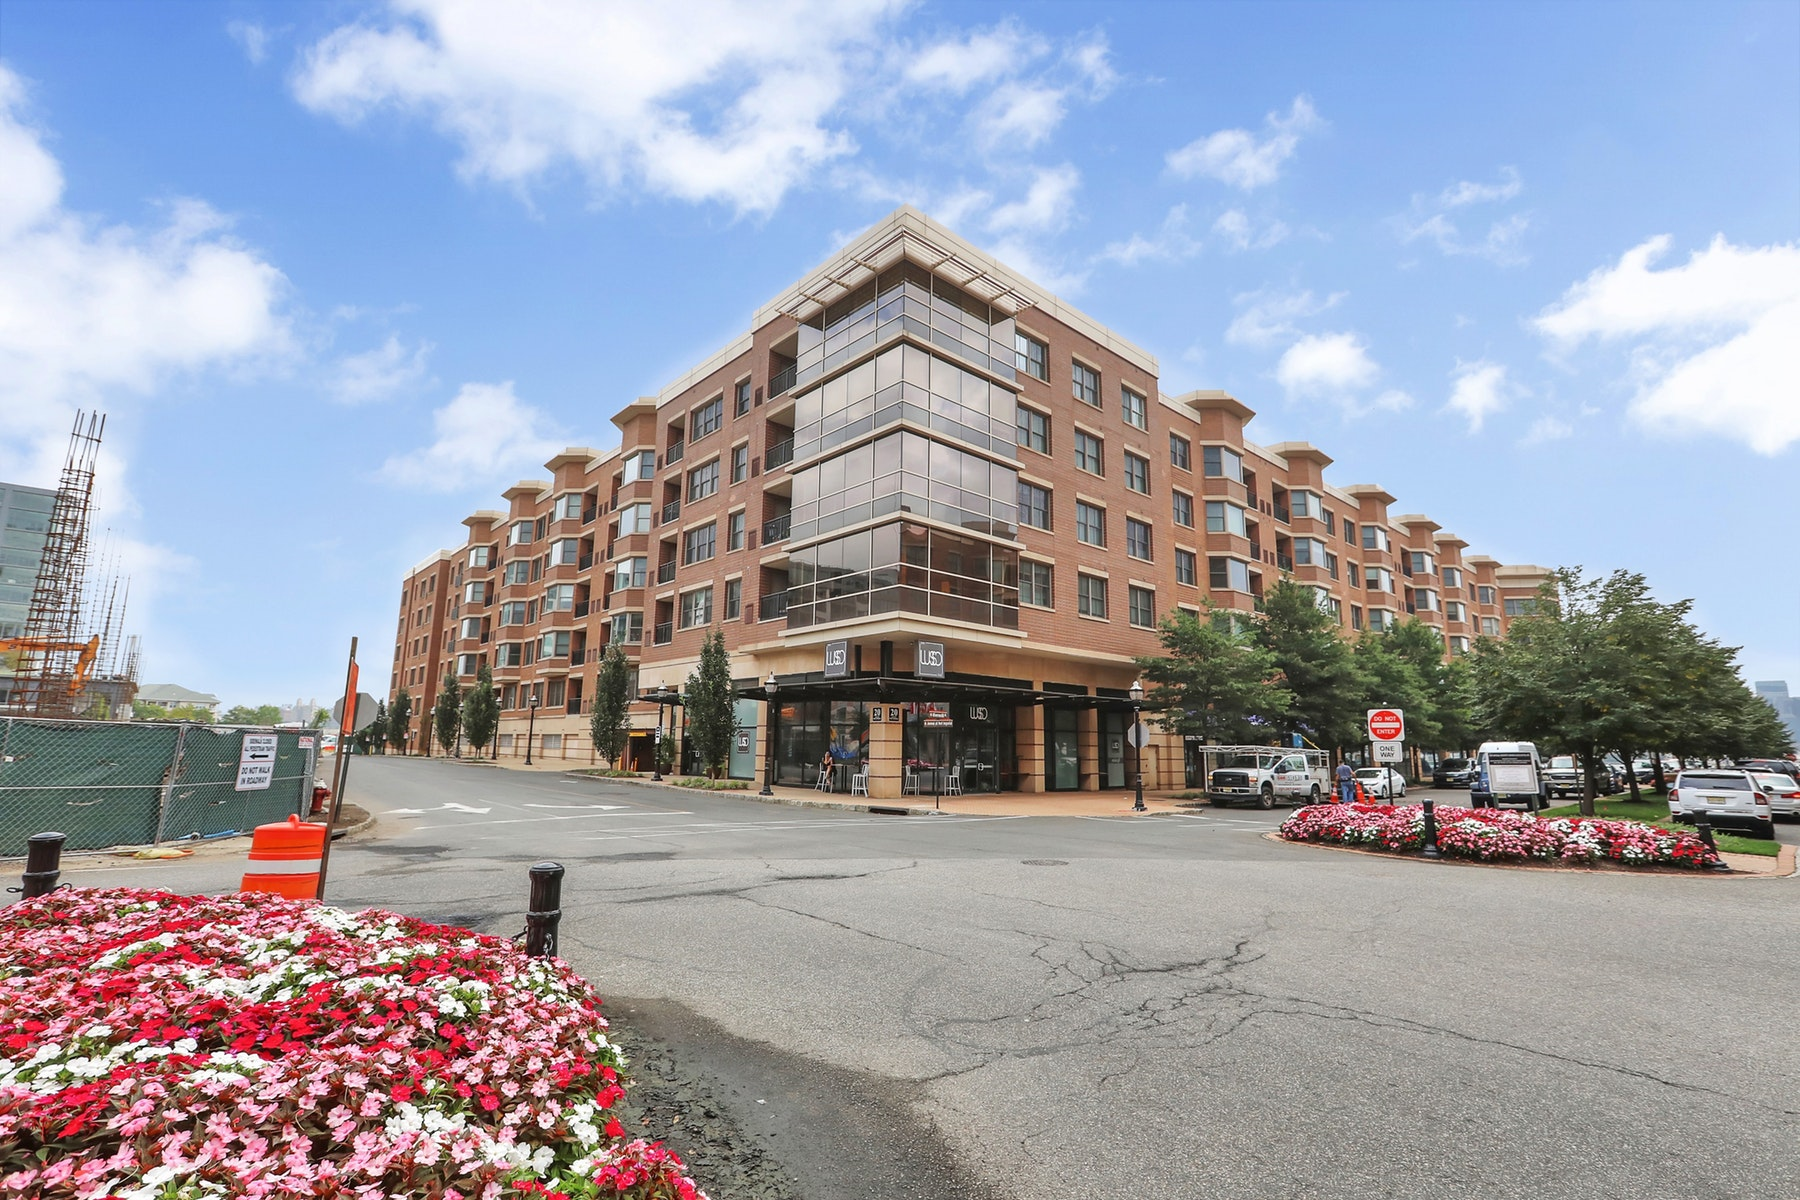 Condominiums for Sale at Grandview II 20 Avenue At Port Imperial #335, West New York, New Jersey 07093 United States